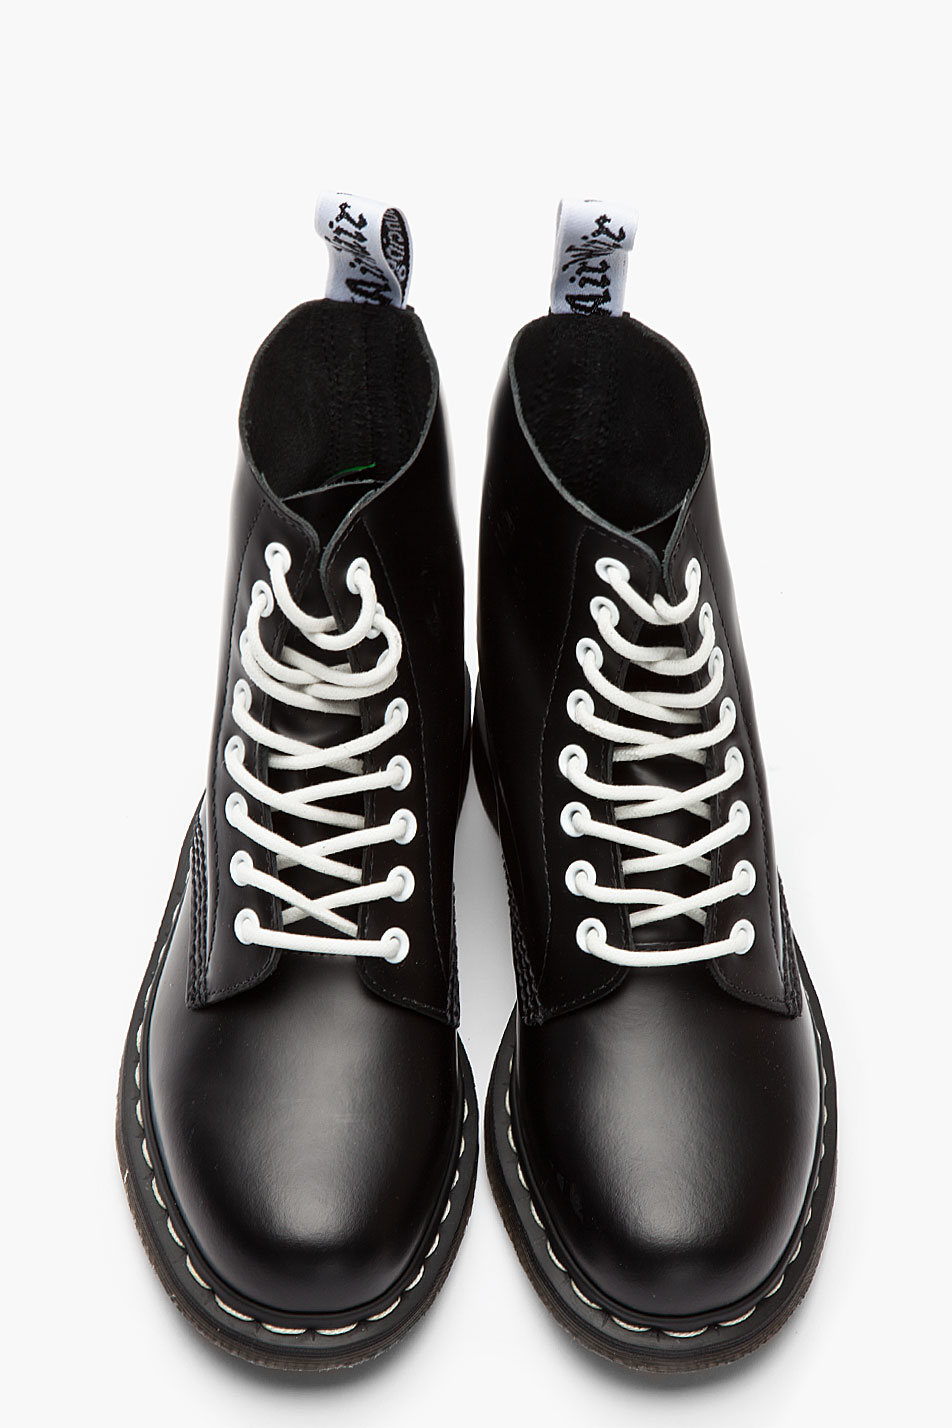 dr martens black white buffed leather 8eye pascal boots